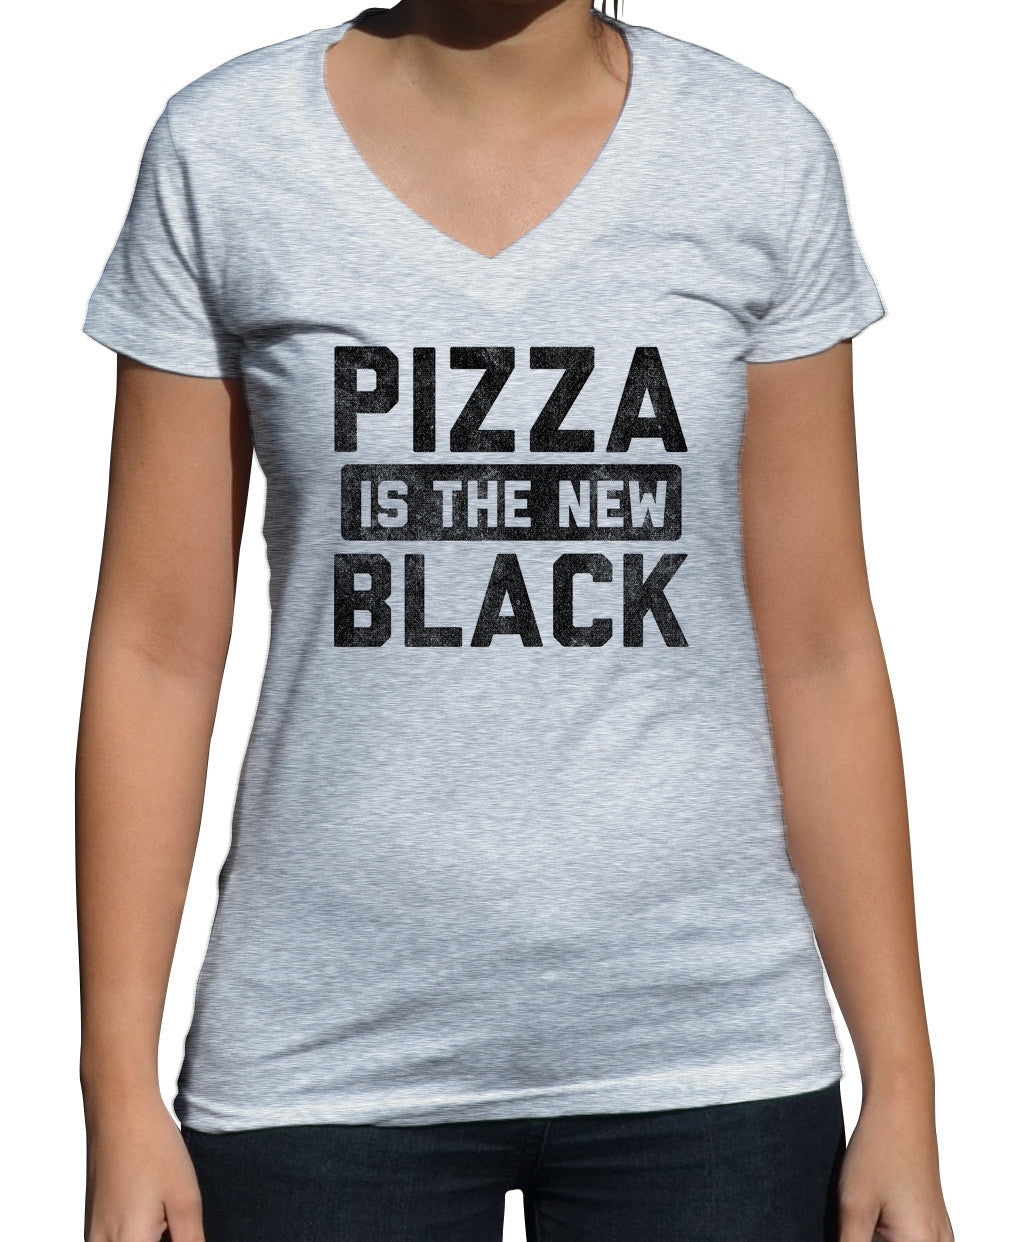 Women's Pizza is the New Black Vneck T-Shirt Foodie Shirt - Food Snob